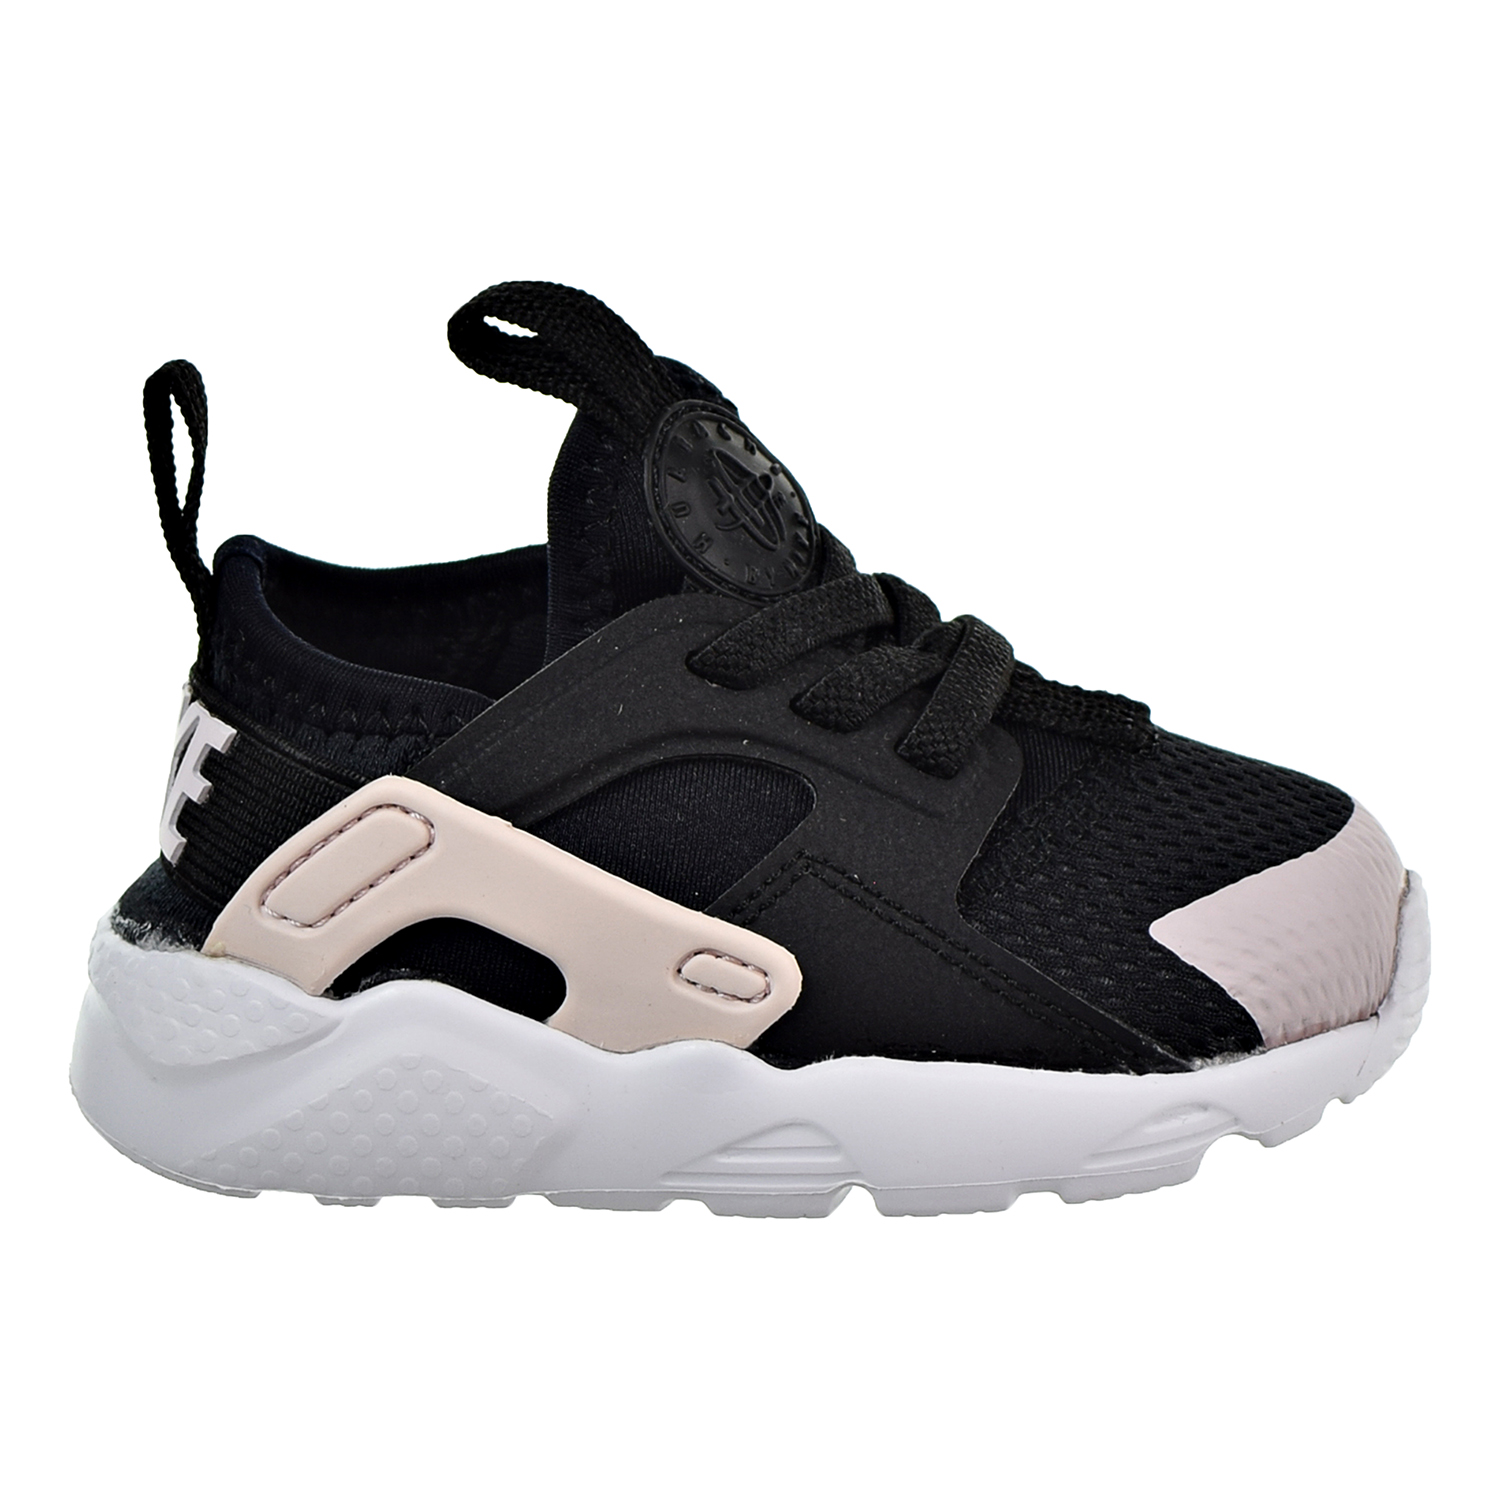 71db223d5287 Details about Nike Huarache Run Ultra Toddlers  Shoes Black Barely  Rose-White 859595-010